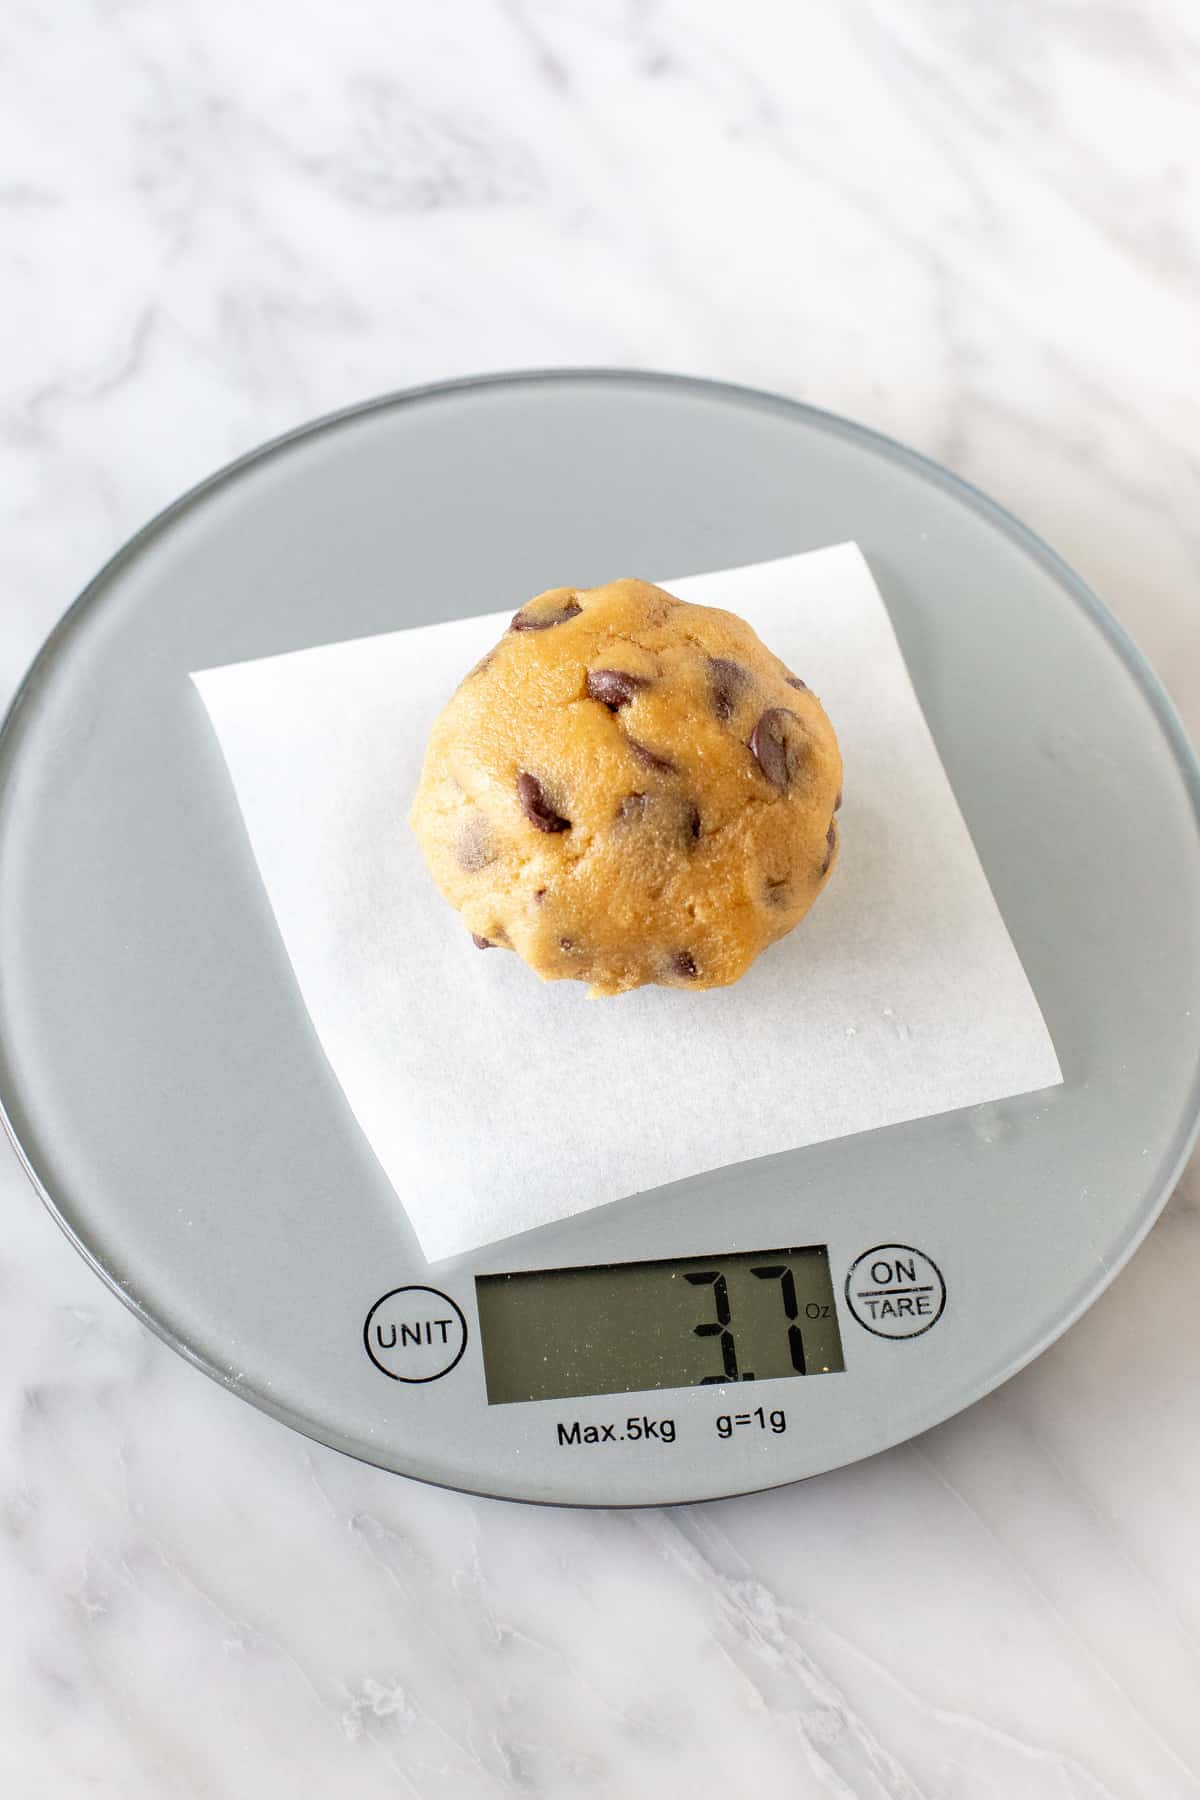 Cookie dough ball on a baking scale.